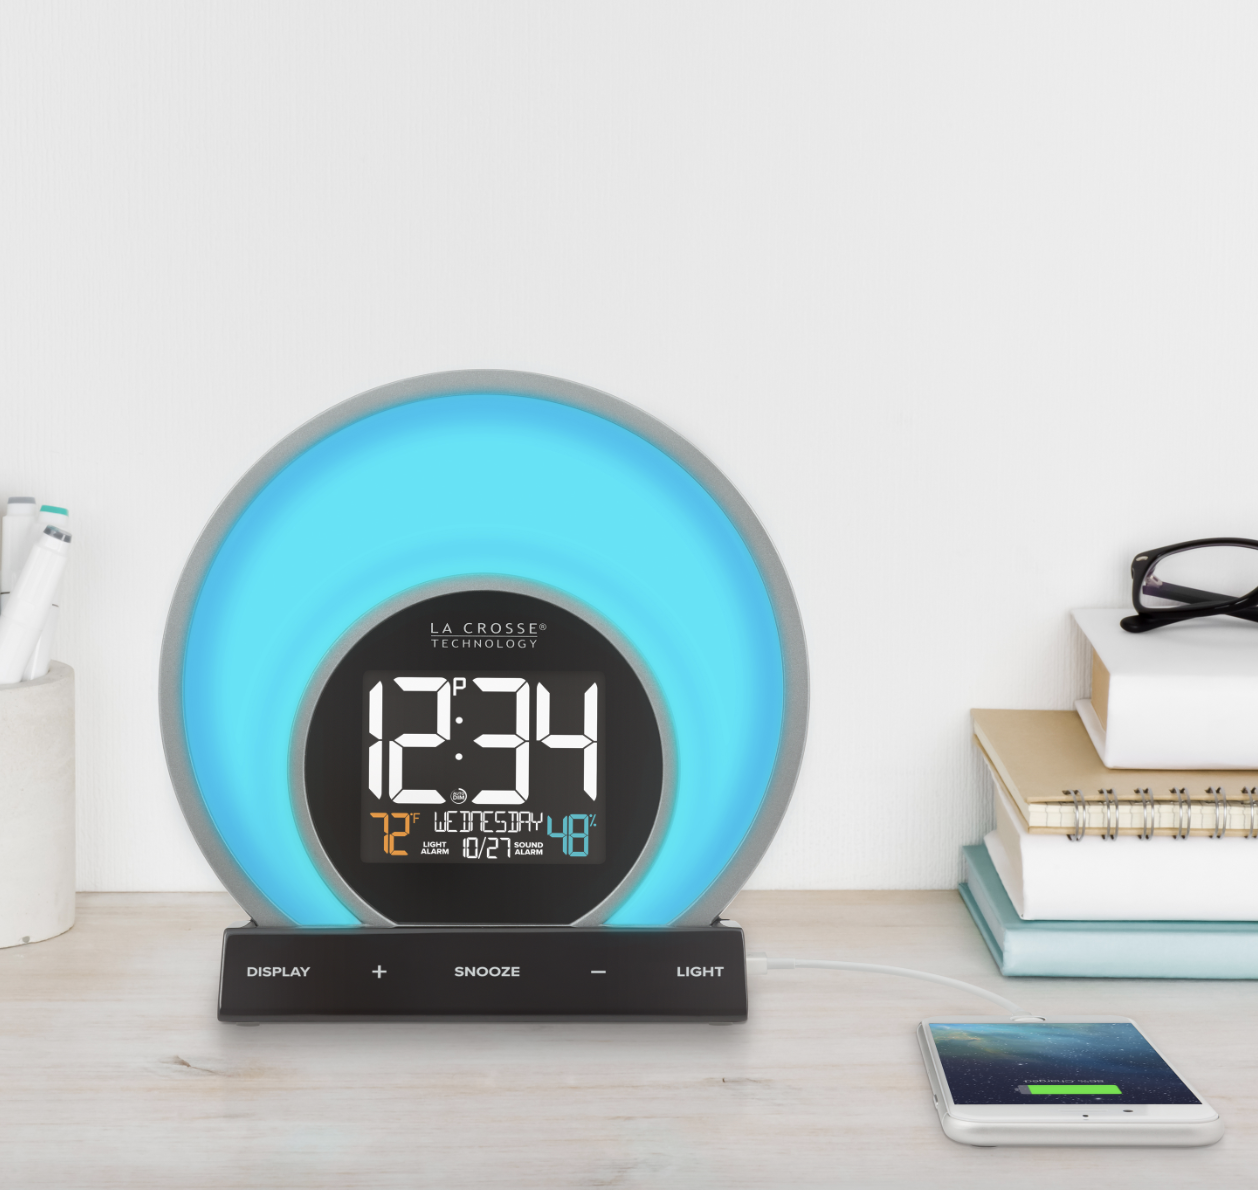 the blue lit alarm clock with an attached phone